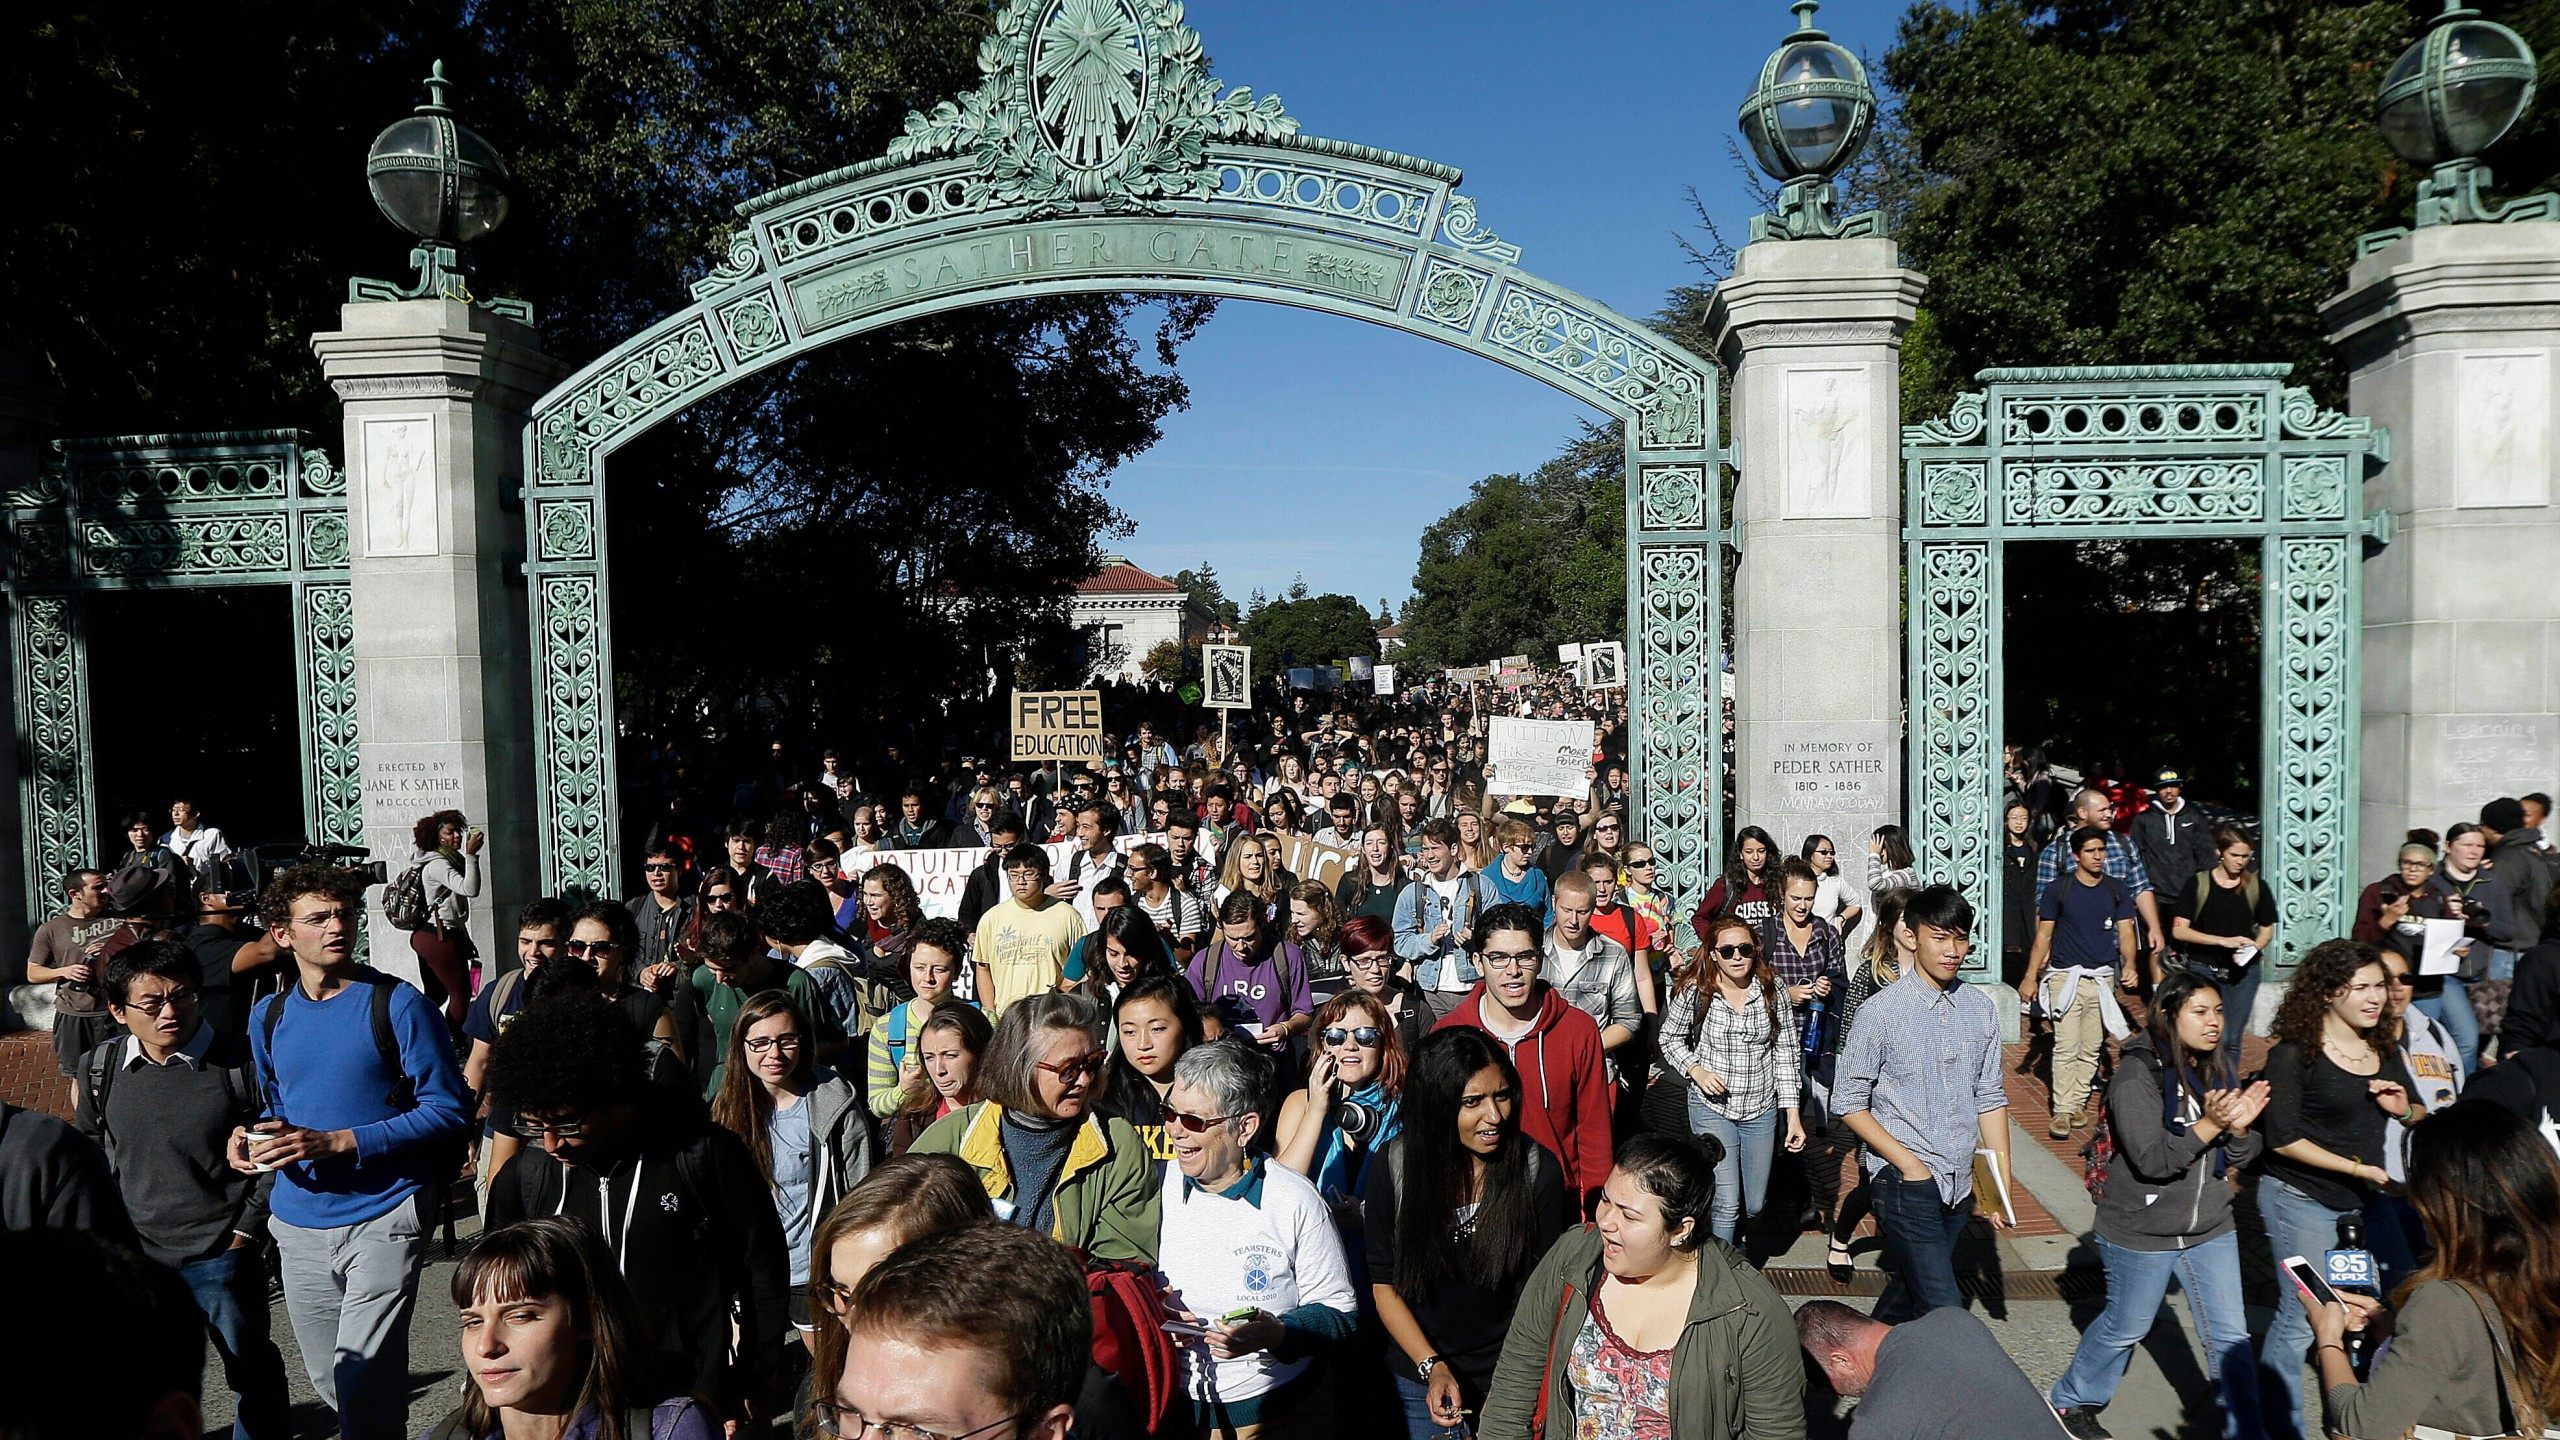 Students march under Sather Gate during a tuition-hike protest at the UC Berkeley on Nov. 24, 2014. (Jeff Chiu / Associated Press)